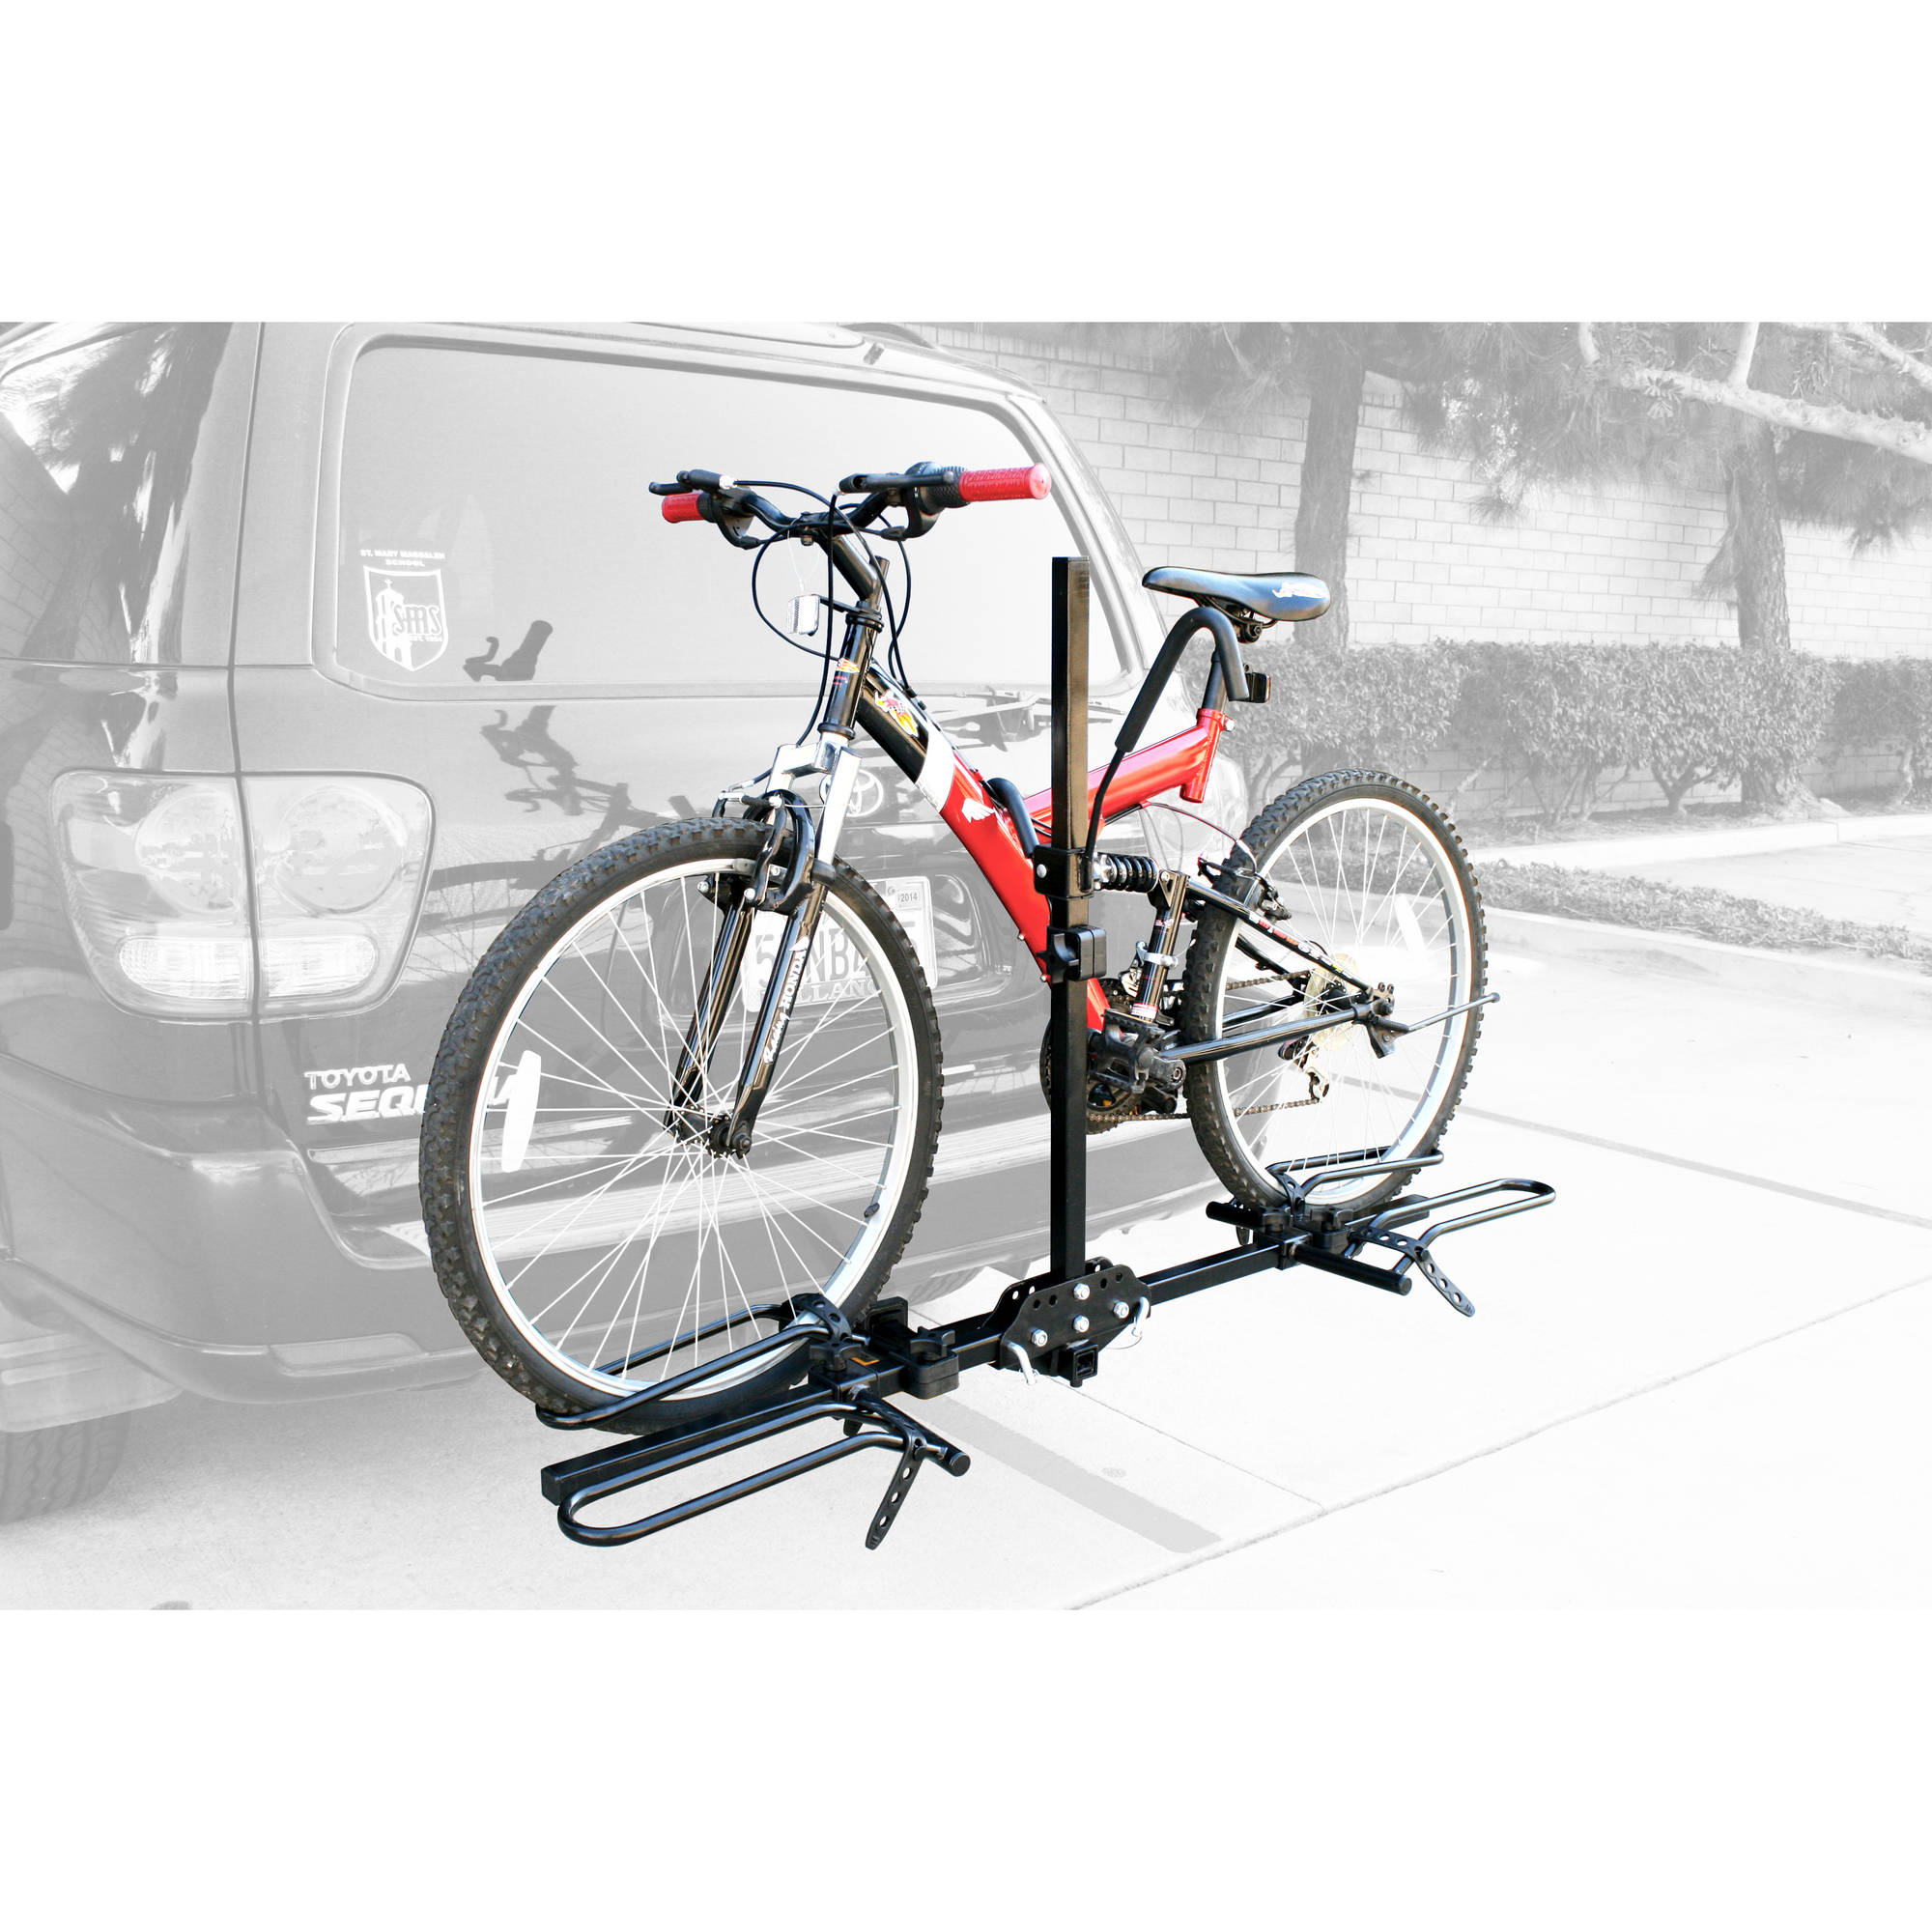 mount products mountain cycle bicycle bike rad lift ceiling product garage capacity ceilings hoist pack